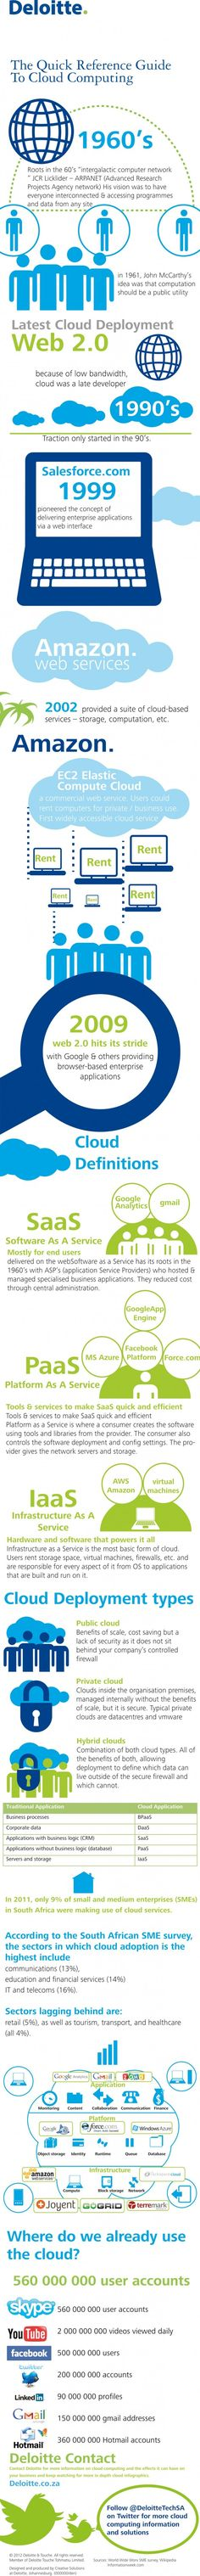 Cloud computing reference guide - Deloitte infographic